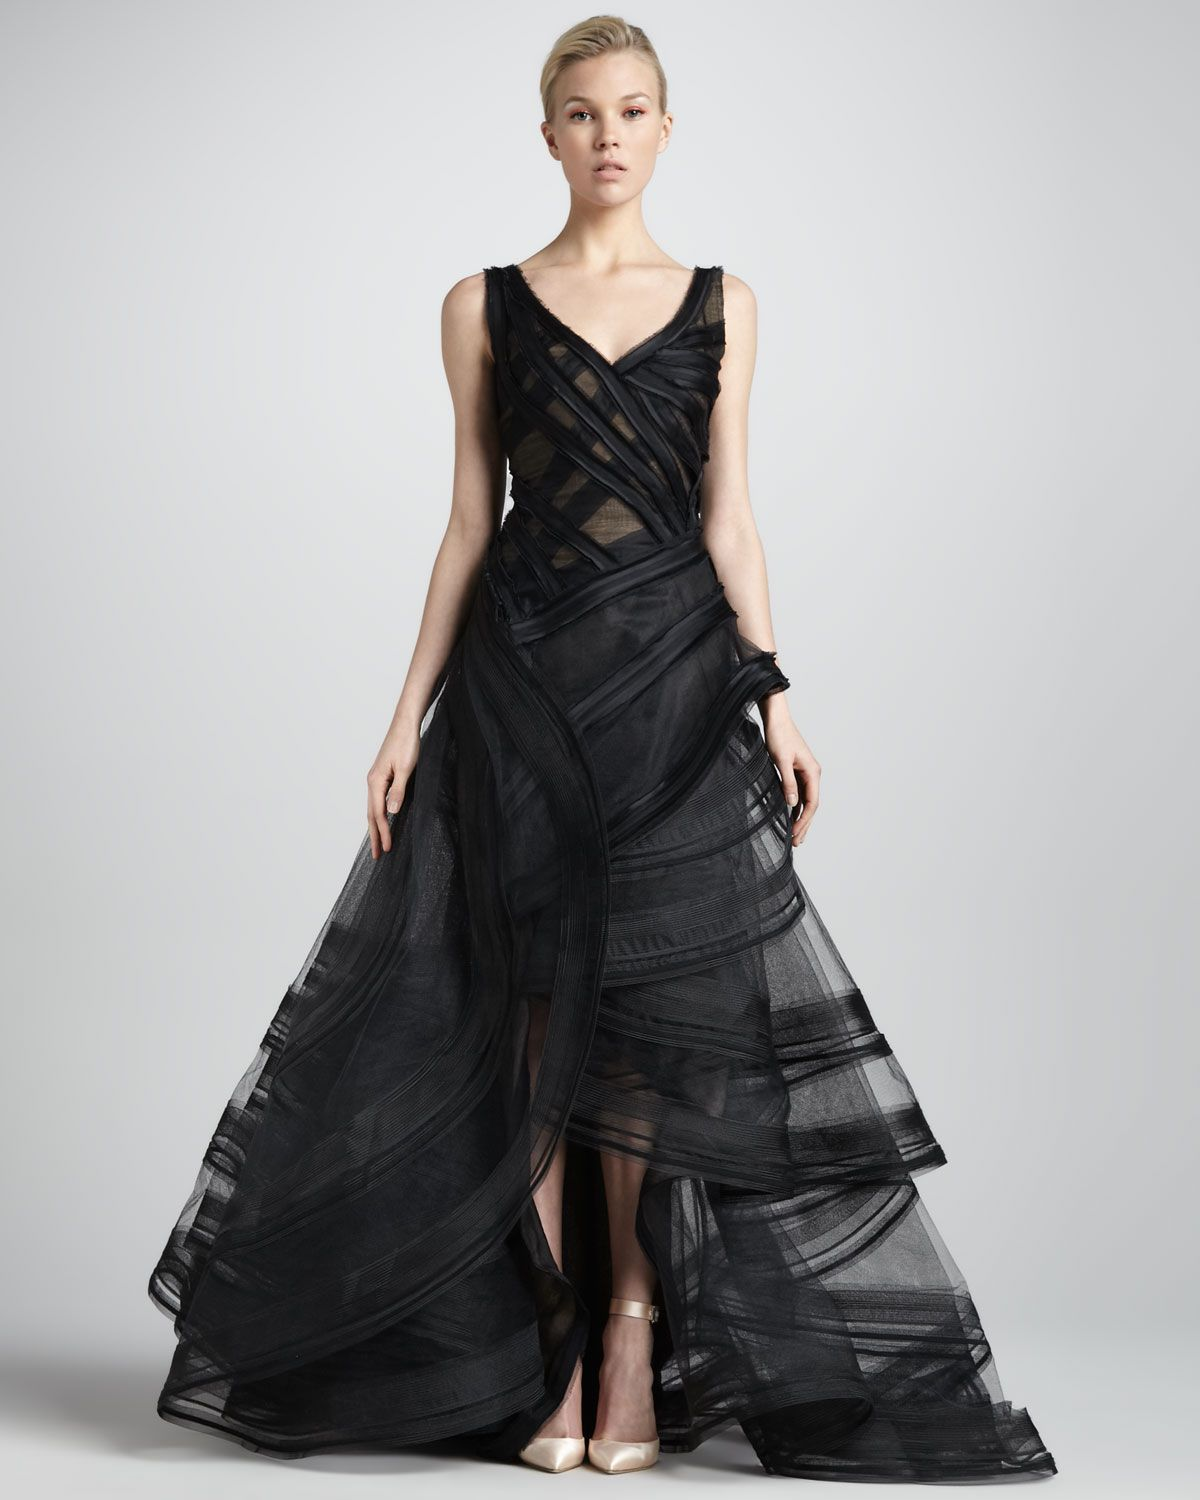 Famous Gowns Neiman Marcus Vignette - Wedding and flowers ispiration ...